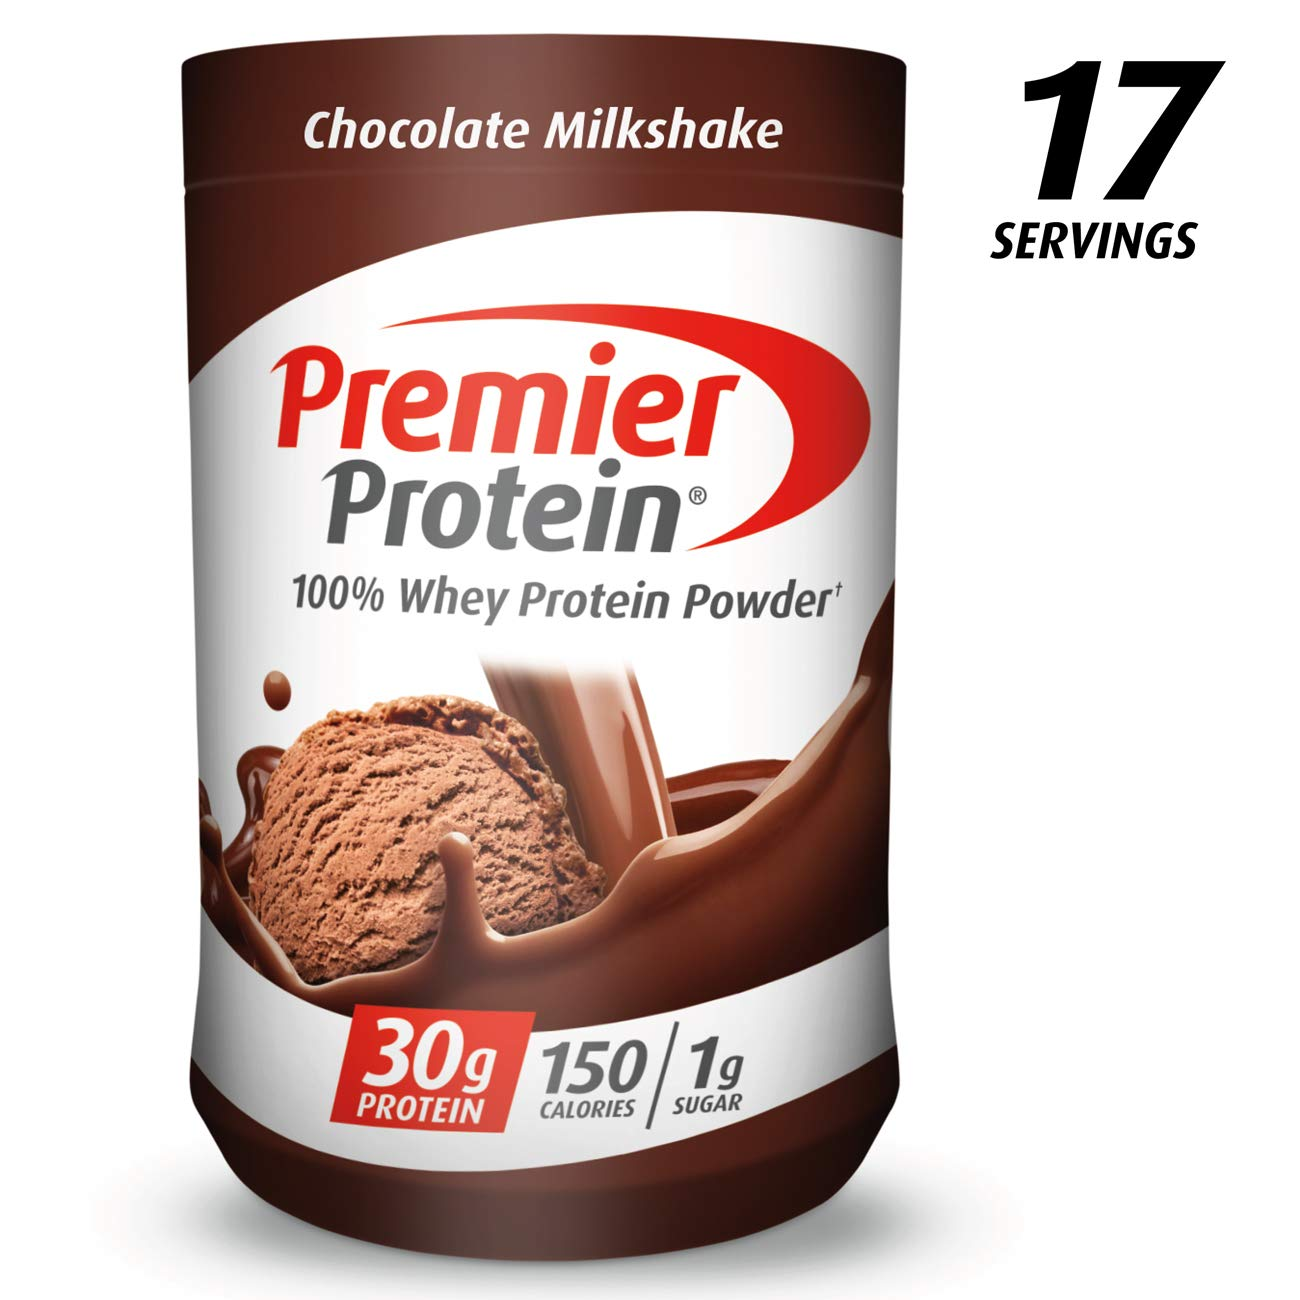 Premier Protein Whey Protein Powder, Chocolate, (17 Servings) by Premier Protein